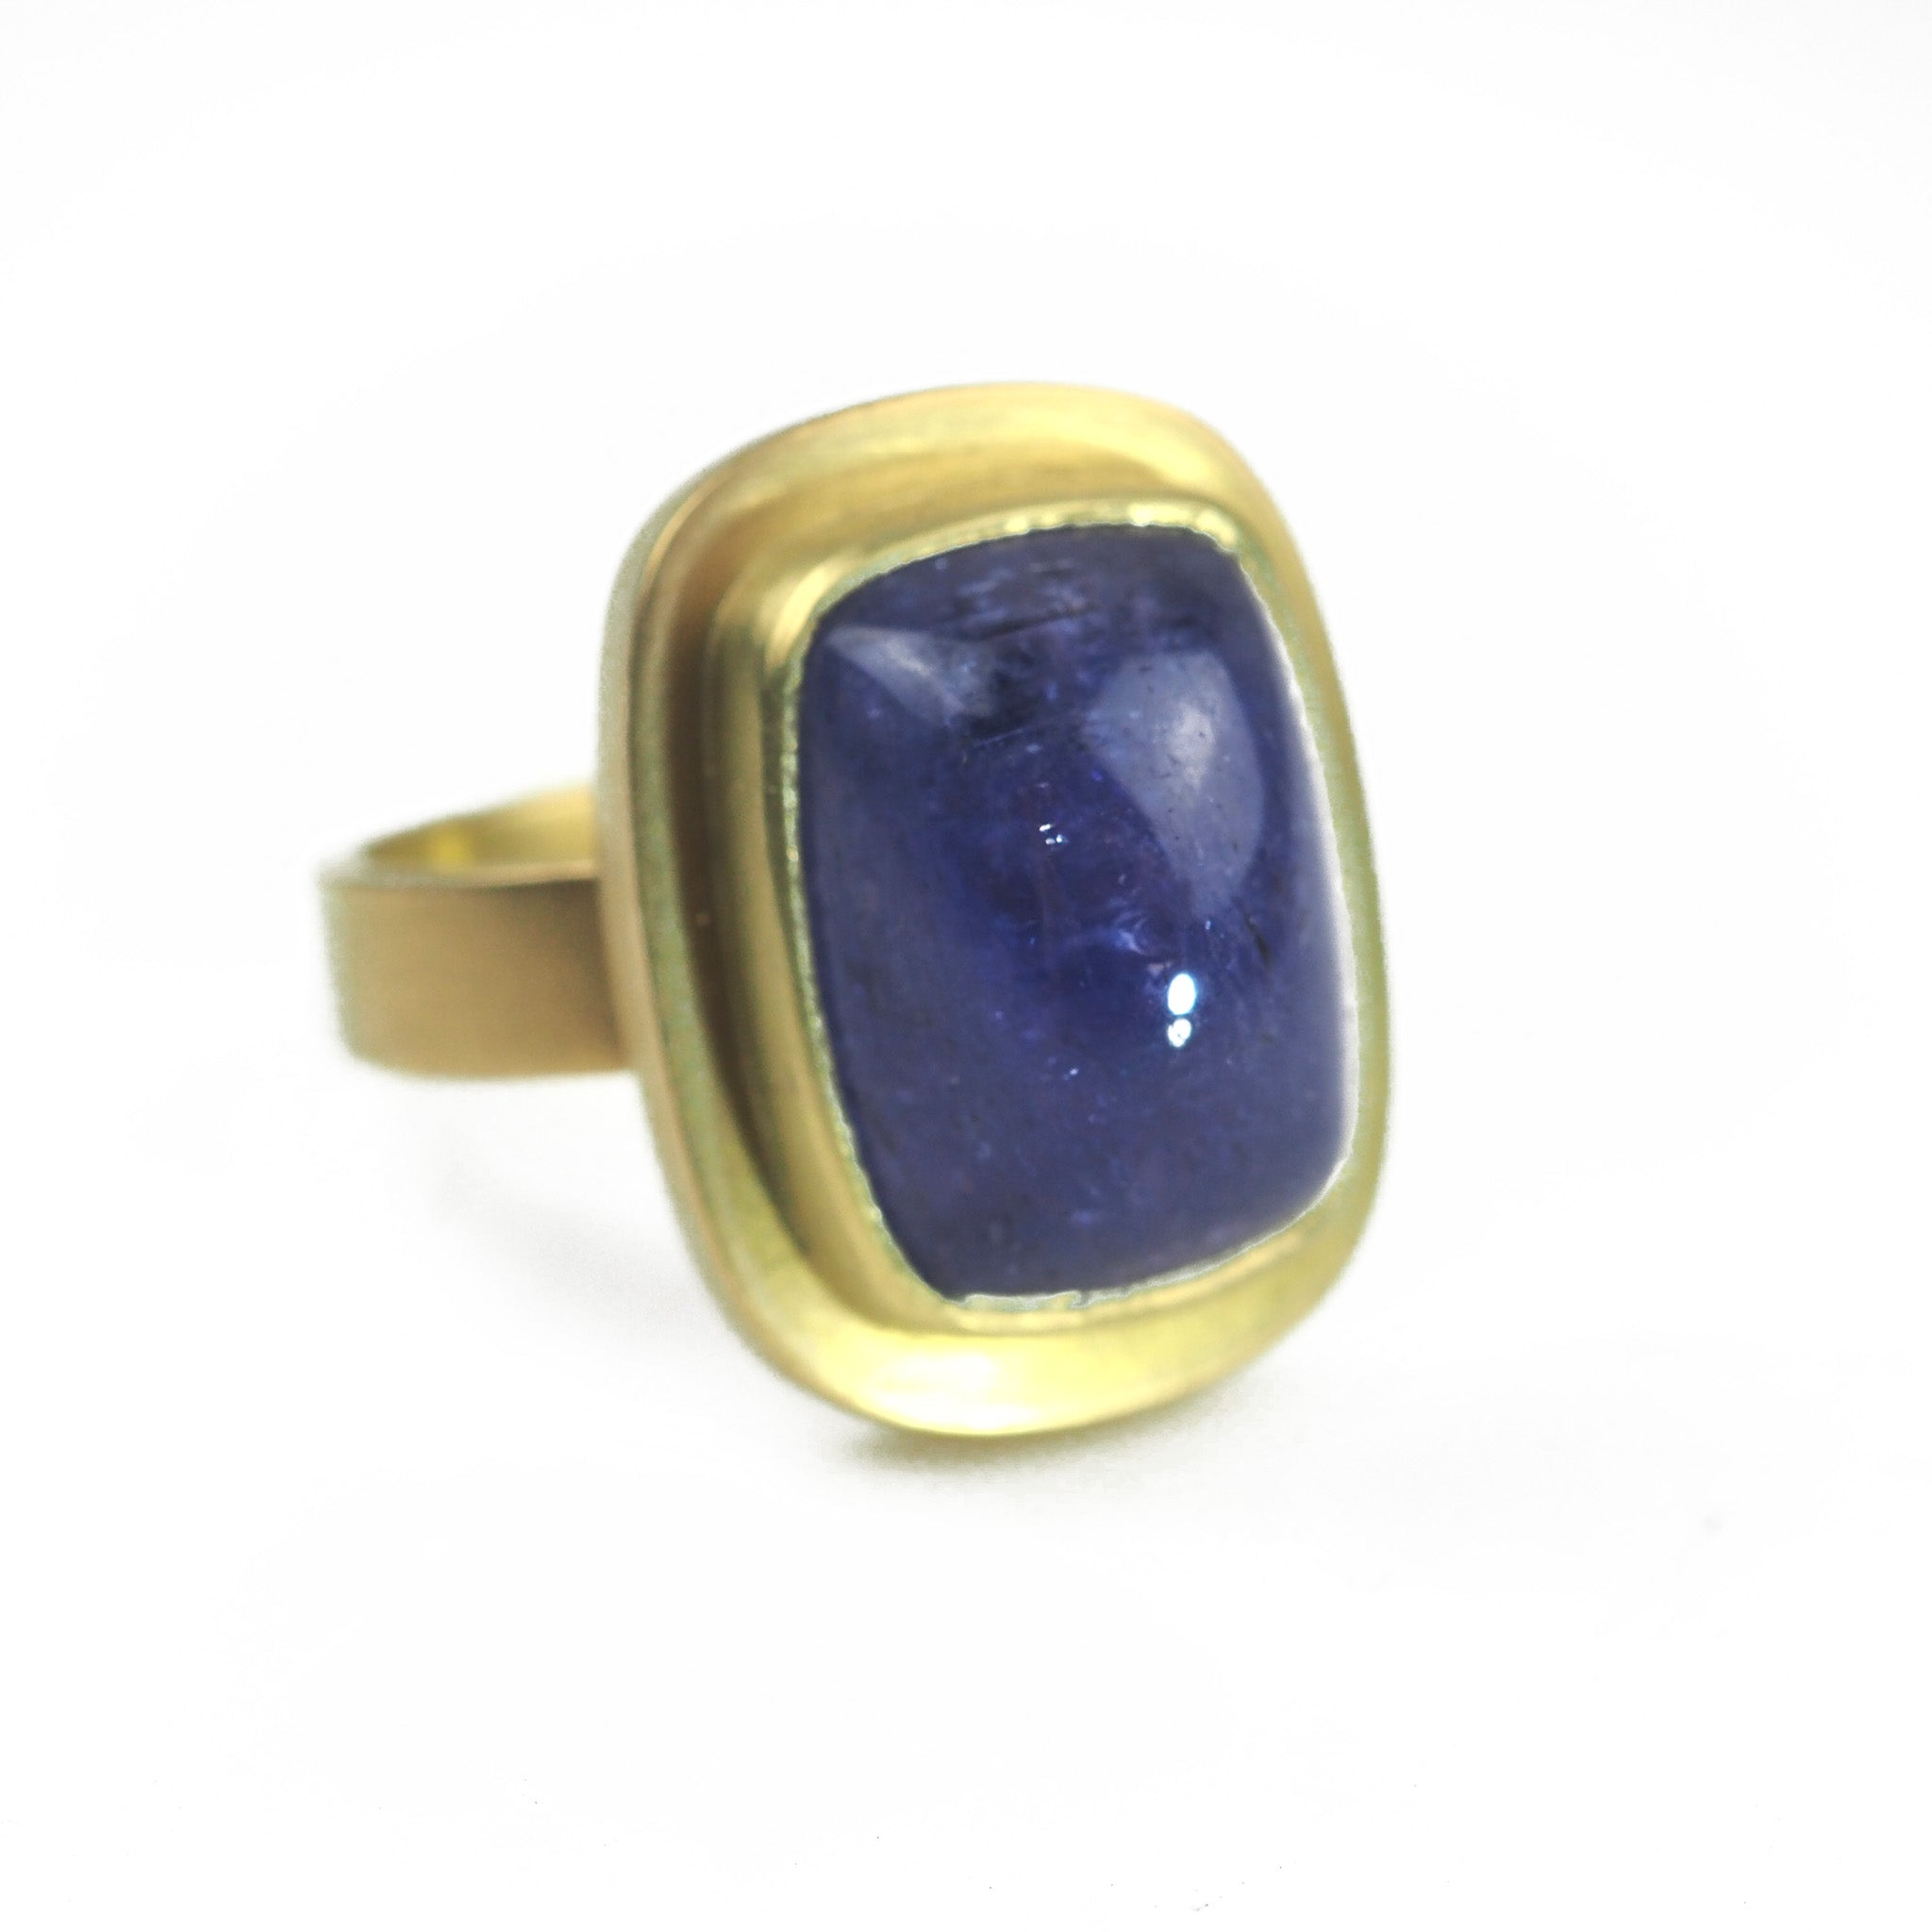 Mannheim, Catherine – Gold Ring With Tanzanite | Catherine Mannheim | Primavera Gallery